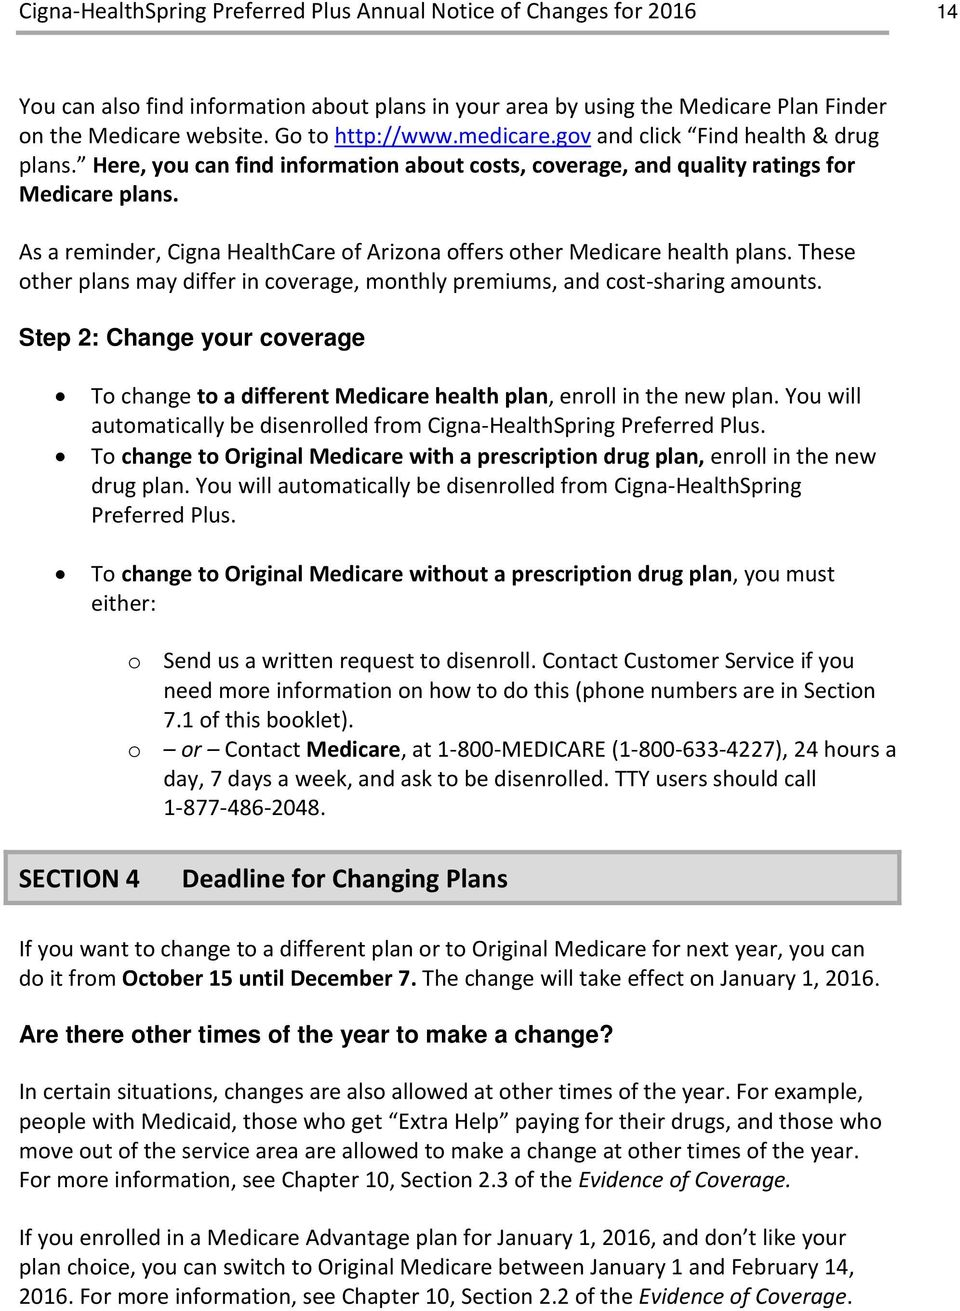 These other plans may differ in coverage, monthly premiums, and cost-sharing amounts. Step 2: Change your coverage To change to a different Medicare health plan, enroll in the new plan.